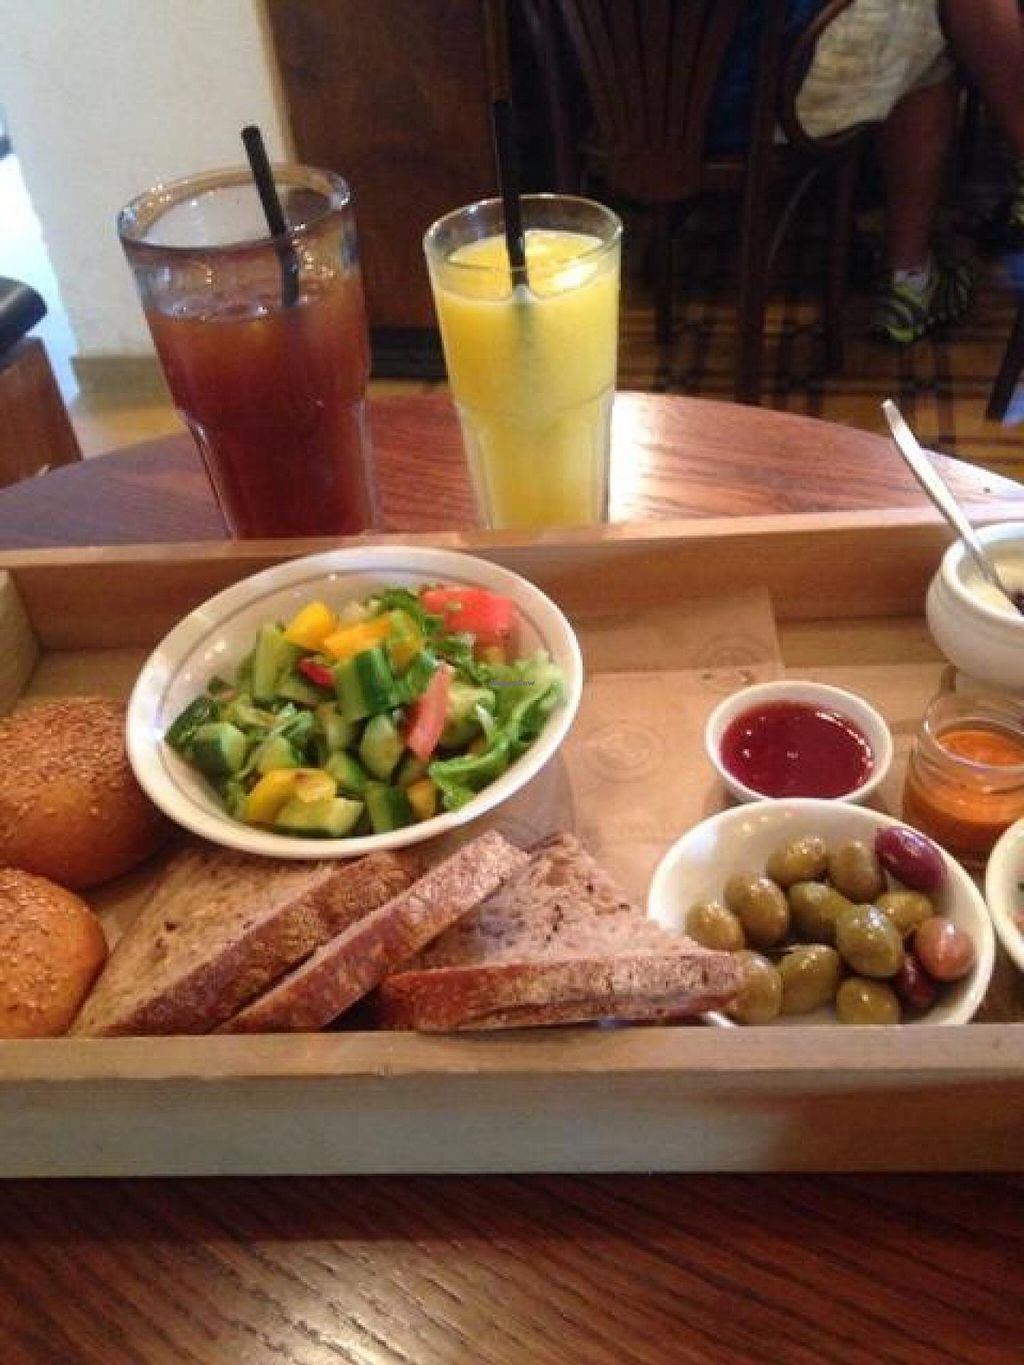 """Photo of Cafe Landwer - Sarona  by <a href=""""/members/profile/Brok%20O.%20Lee"""">Brok O. Lee</a> <br/>Part of big vegan breakfast <br/> October 17, 2014  - <a href='/contact/abuse/image/51890/83170'>Report</a>"""